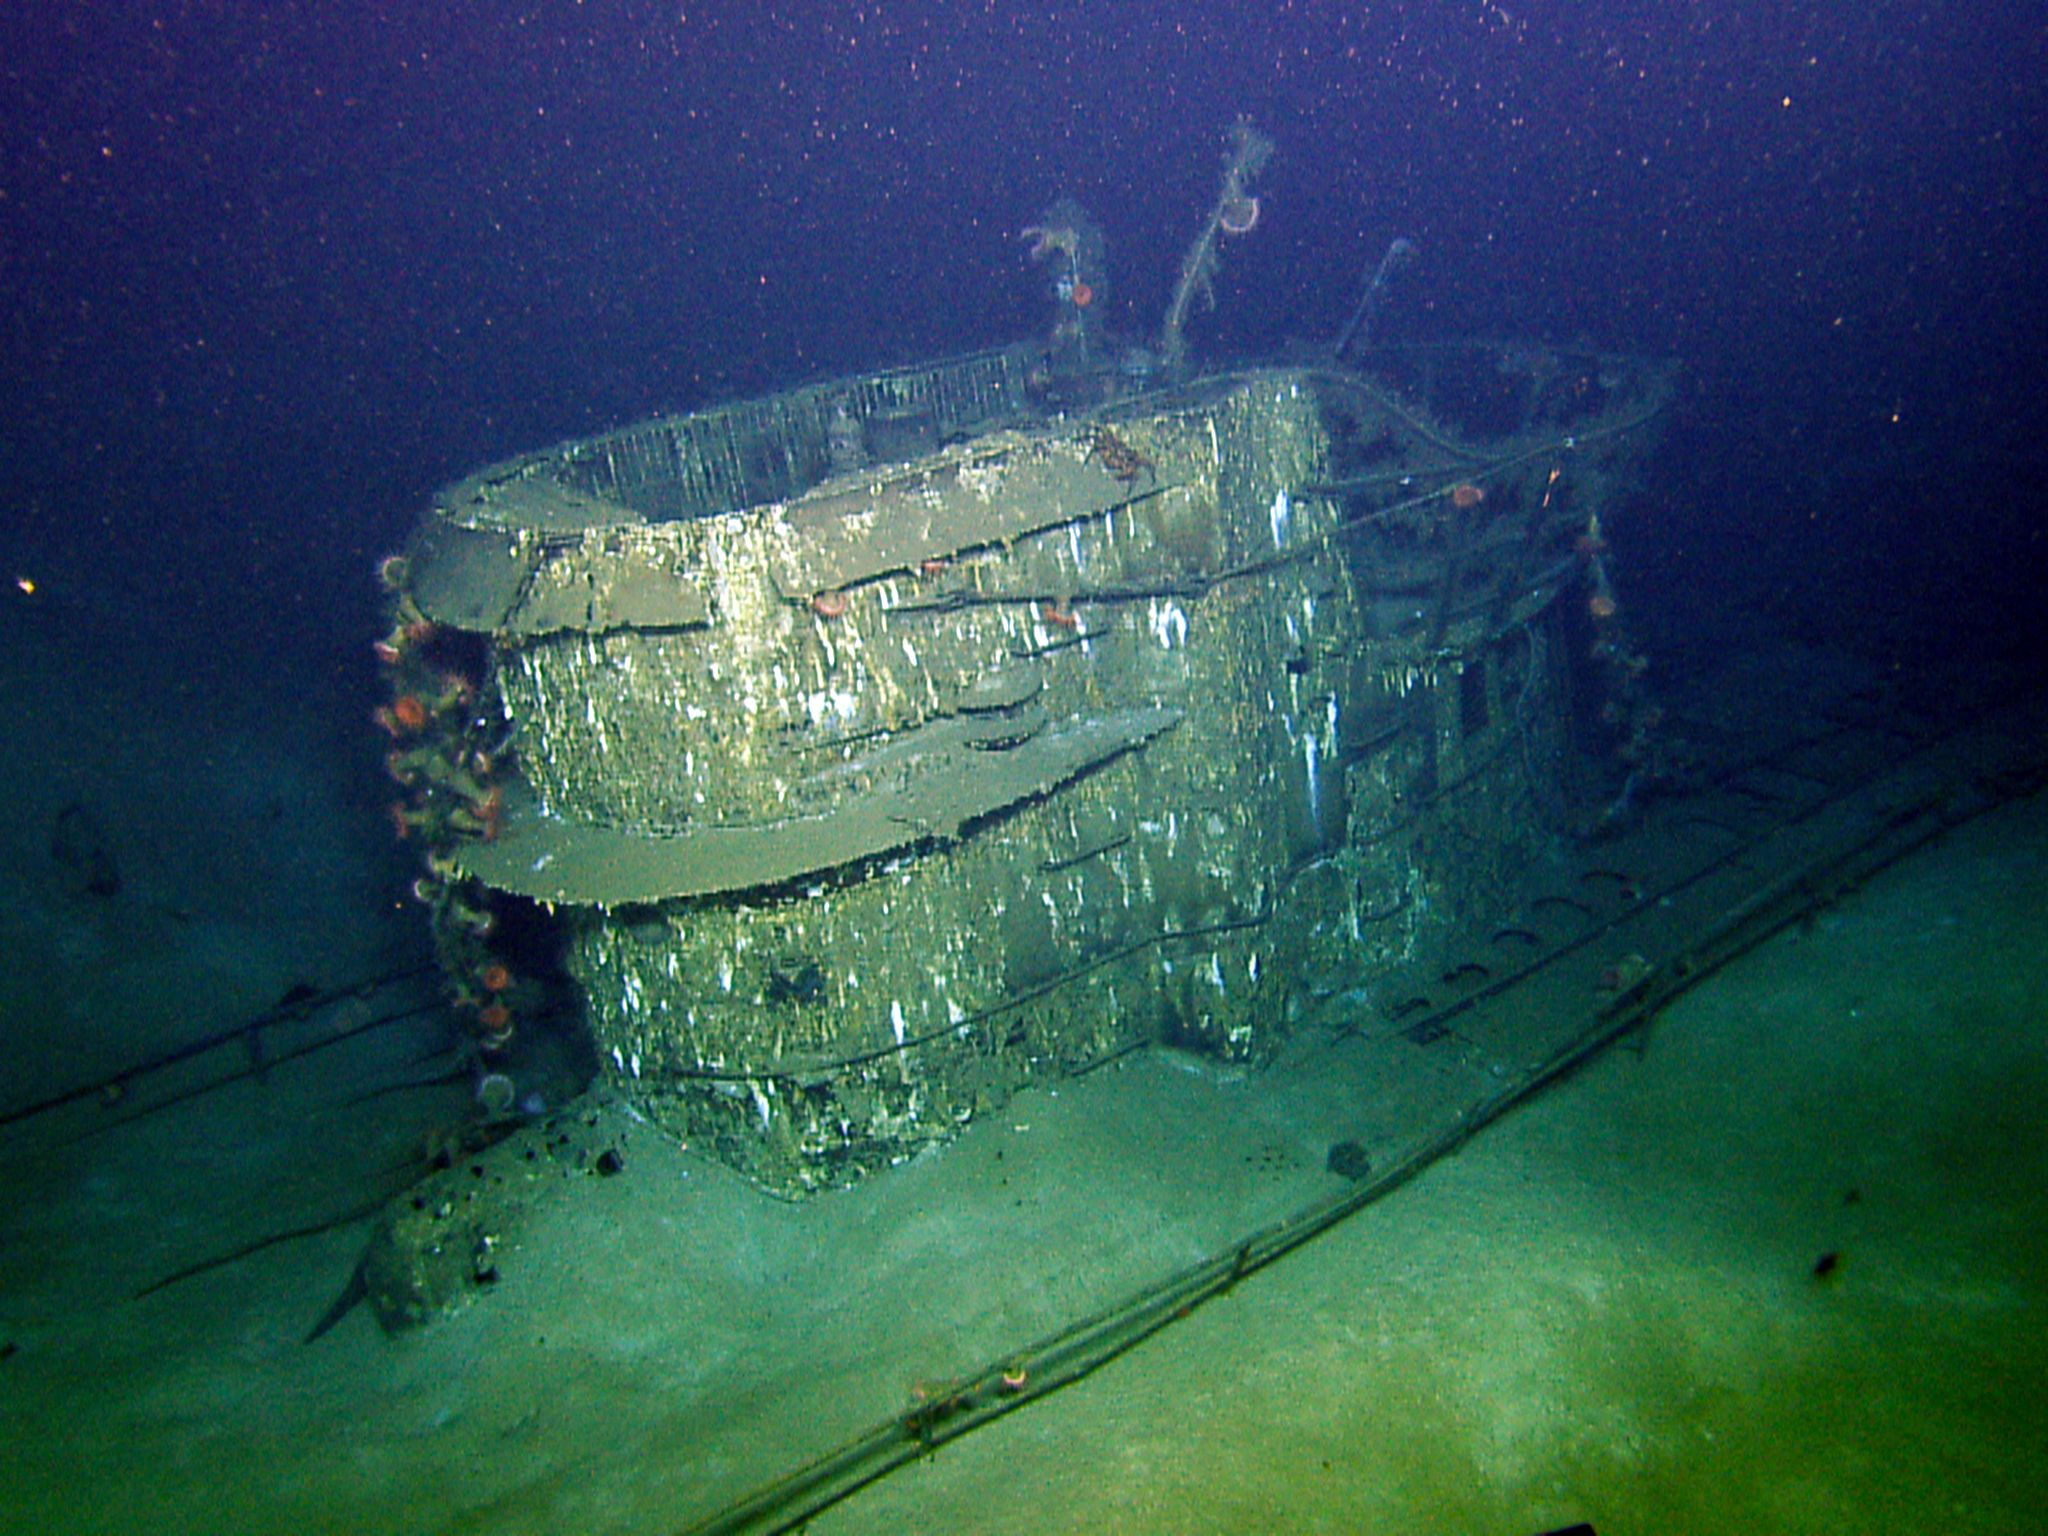 Conning Tower from wrecked Nazi U-boat, U-166. This image is from Nazi U-Boat. [Photo of the day - 十月 2015]